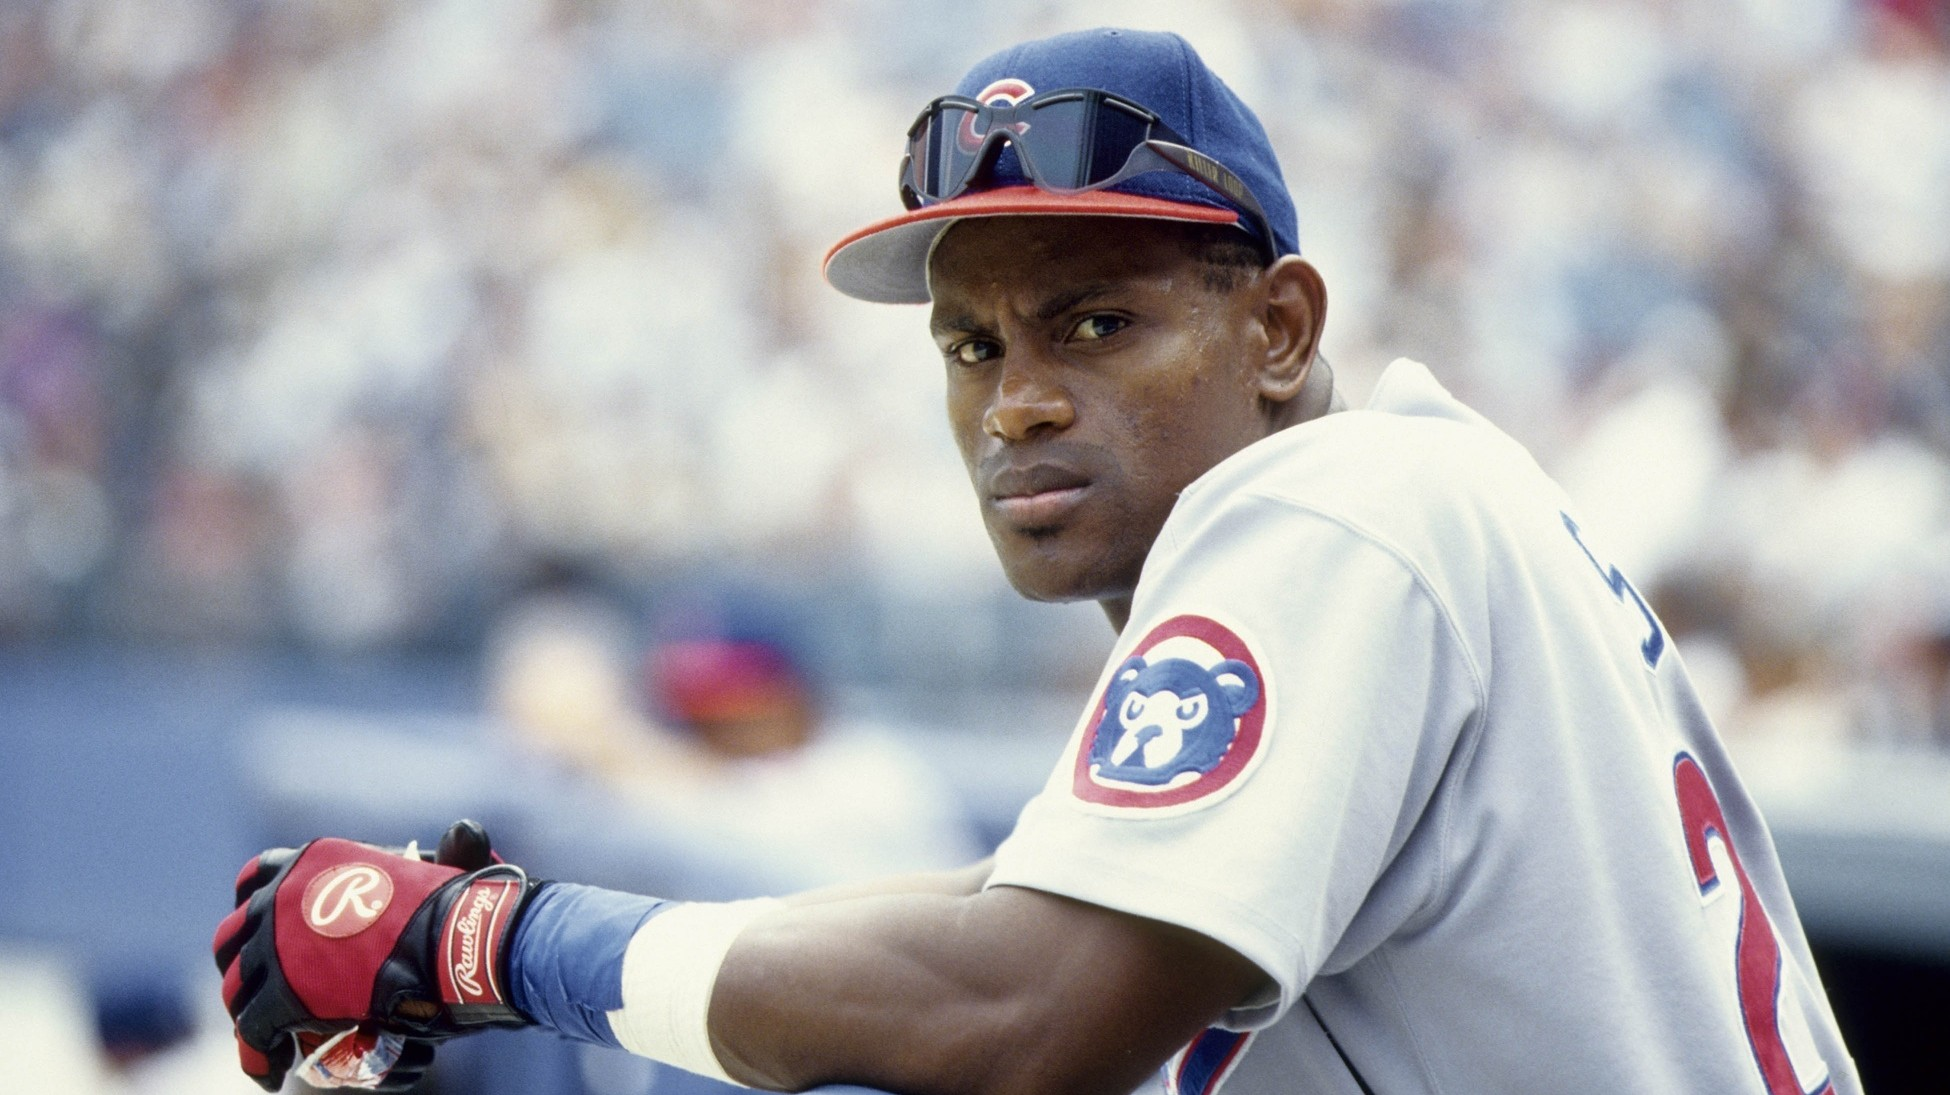 Hall of Fame Voters Shift on Steroids, But That Won't Help Sammy Sosa